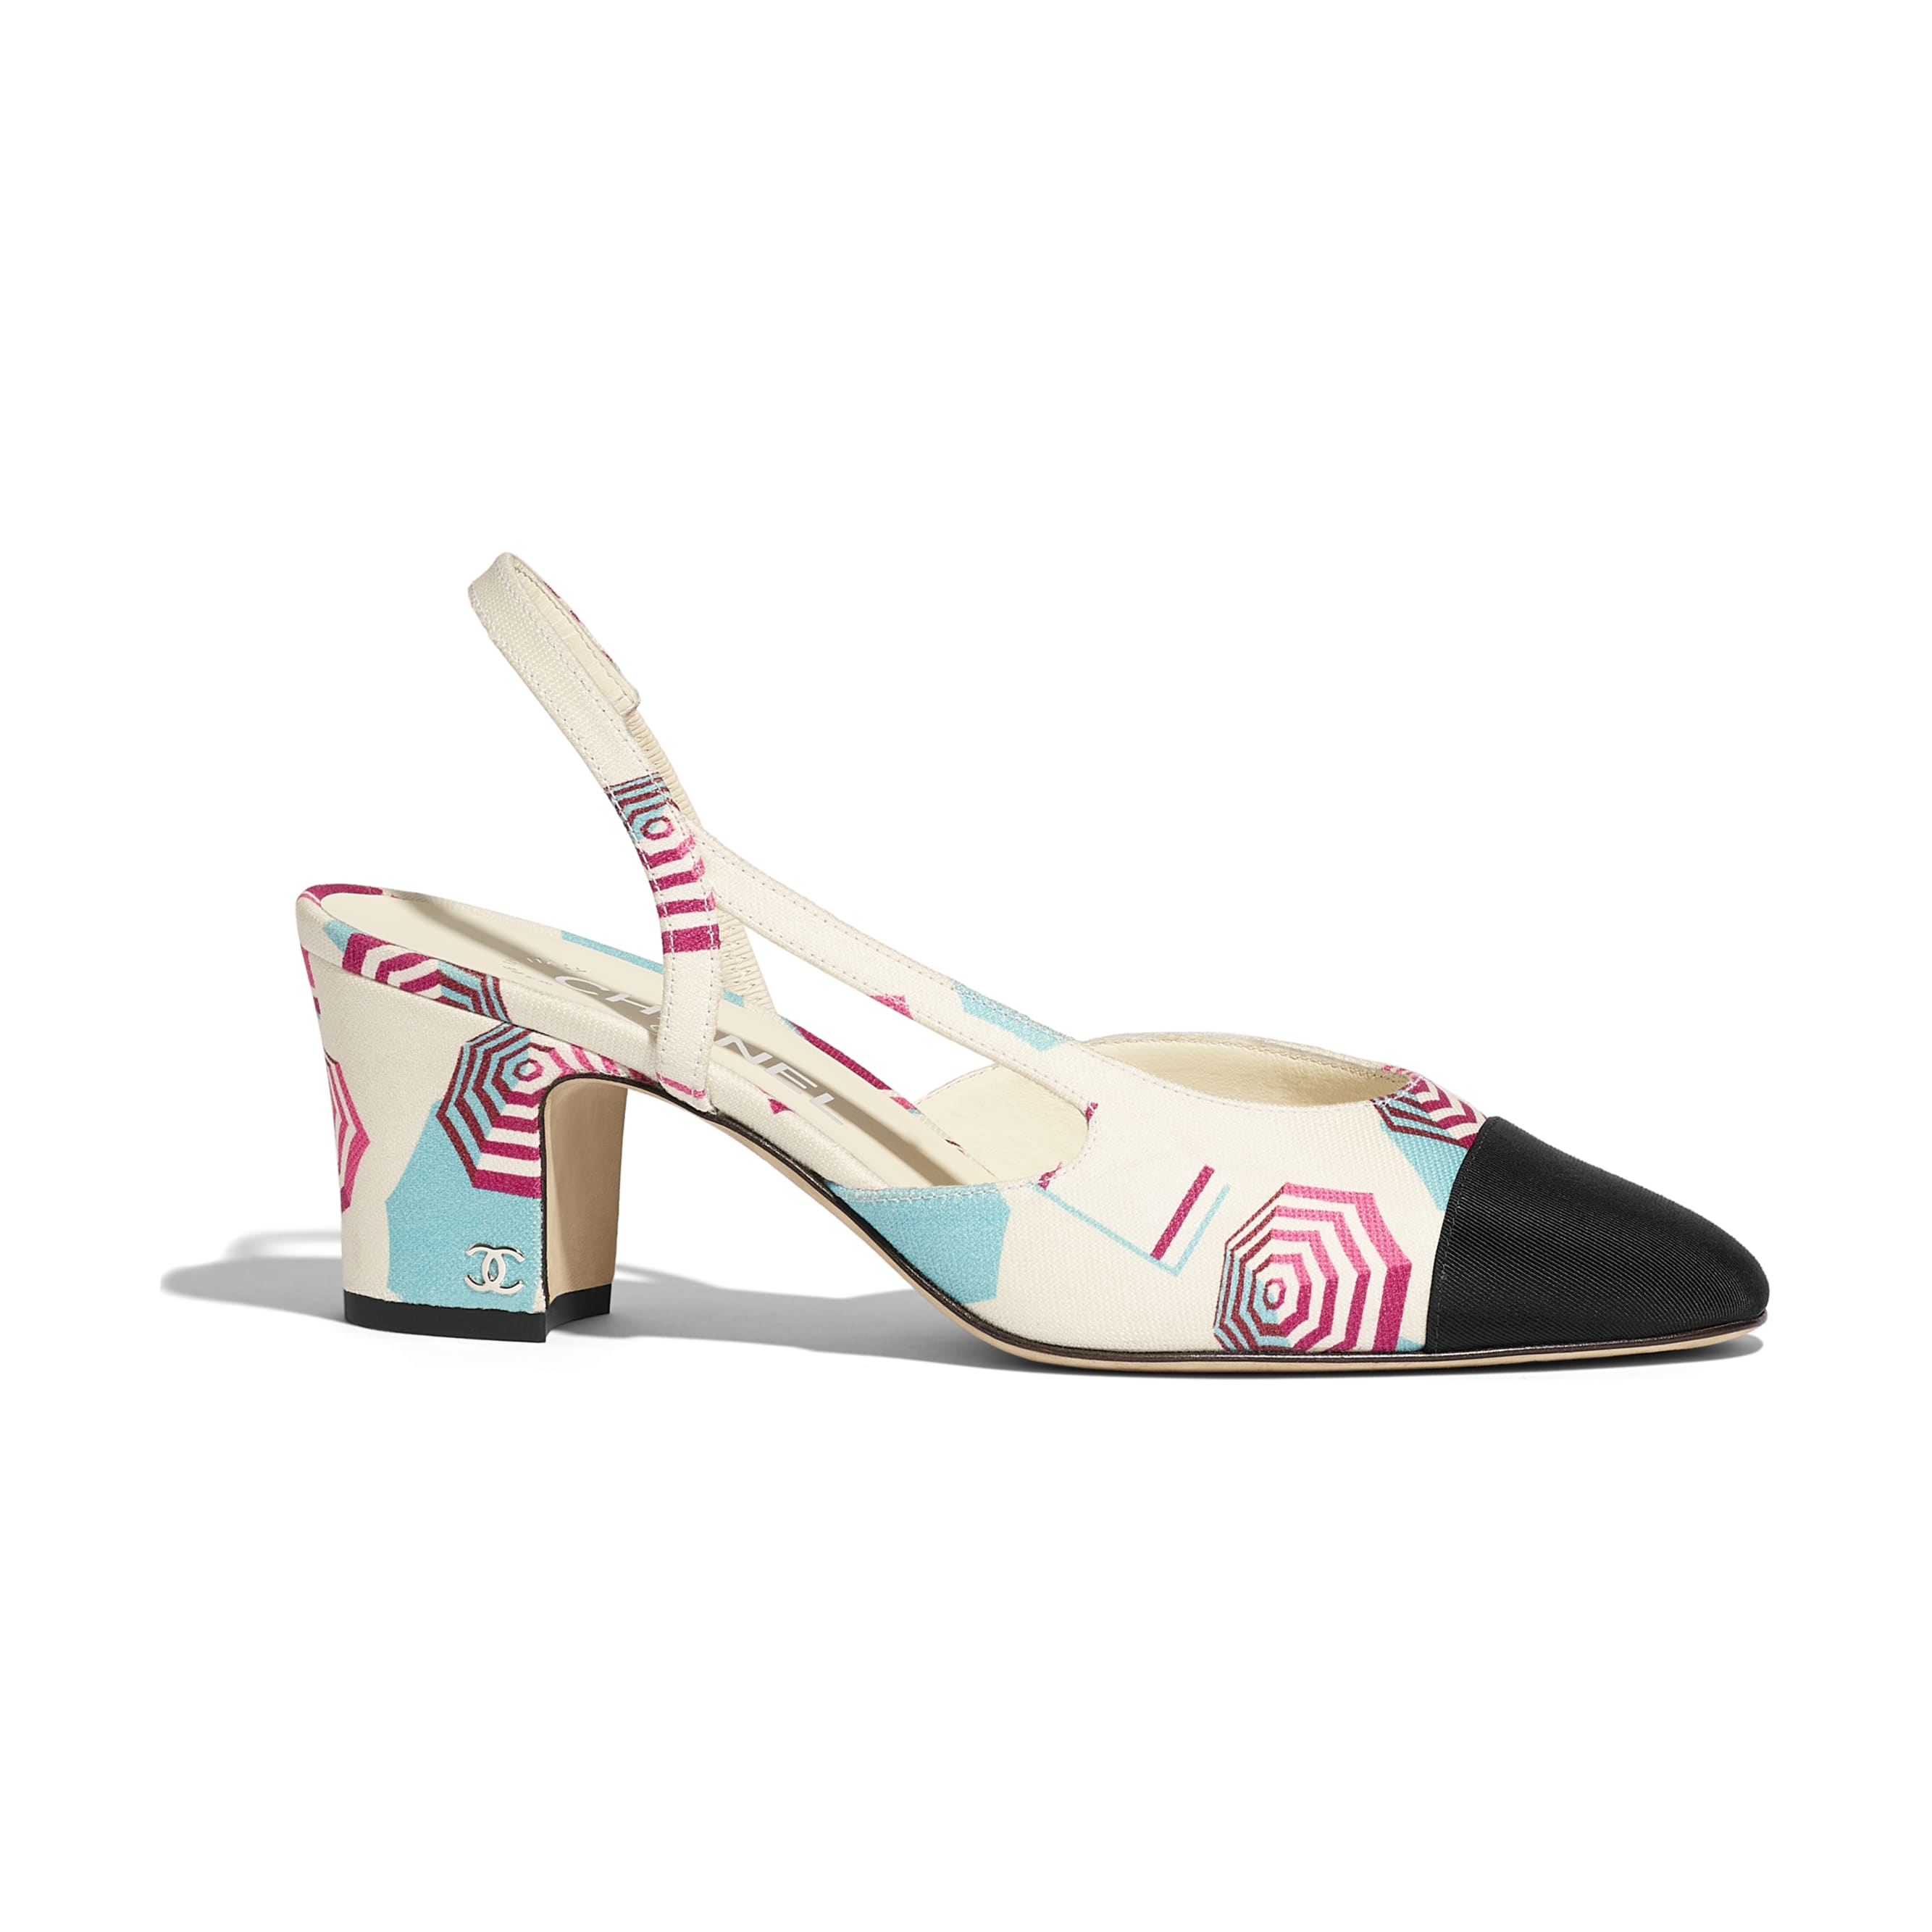 Slingbacks - Ecru, Blue, Pink & Black - Fabric - Default view - see standard sized version